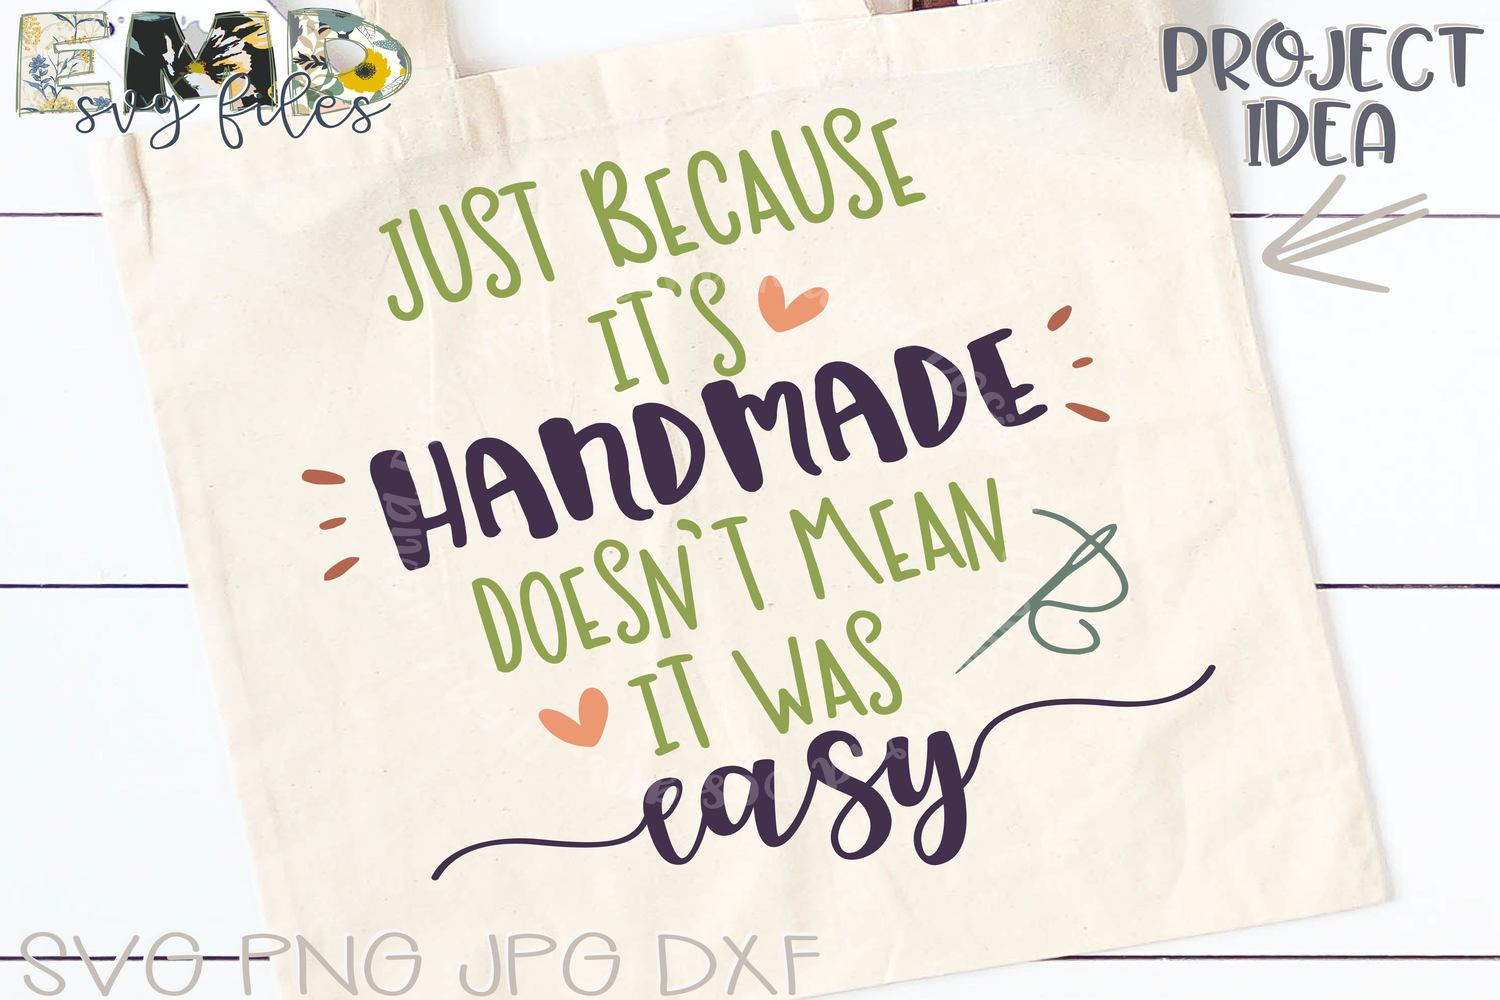 Sewing SVG Bundle, Creative SVG Files, Fabric Svg, Quilting example image 5